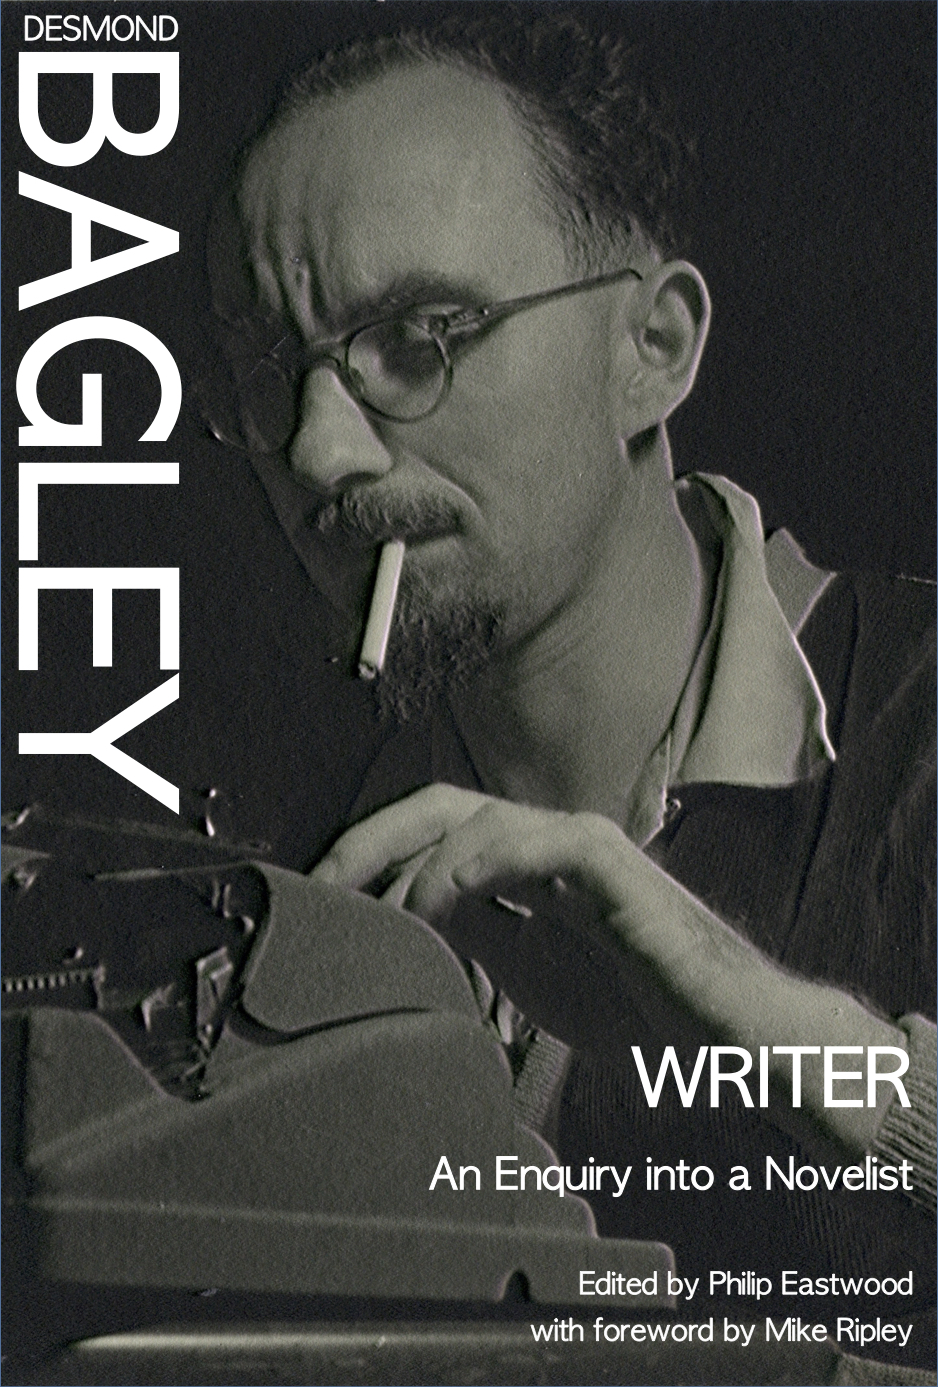 Desmond Bagley's unpublished autobiagraphy: Writer - An Enquiry into a Novelist. Edited by Philip Eastwood with foreword by Mike Ripley.